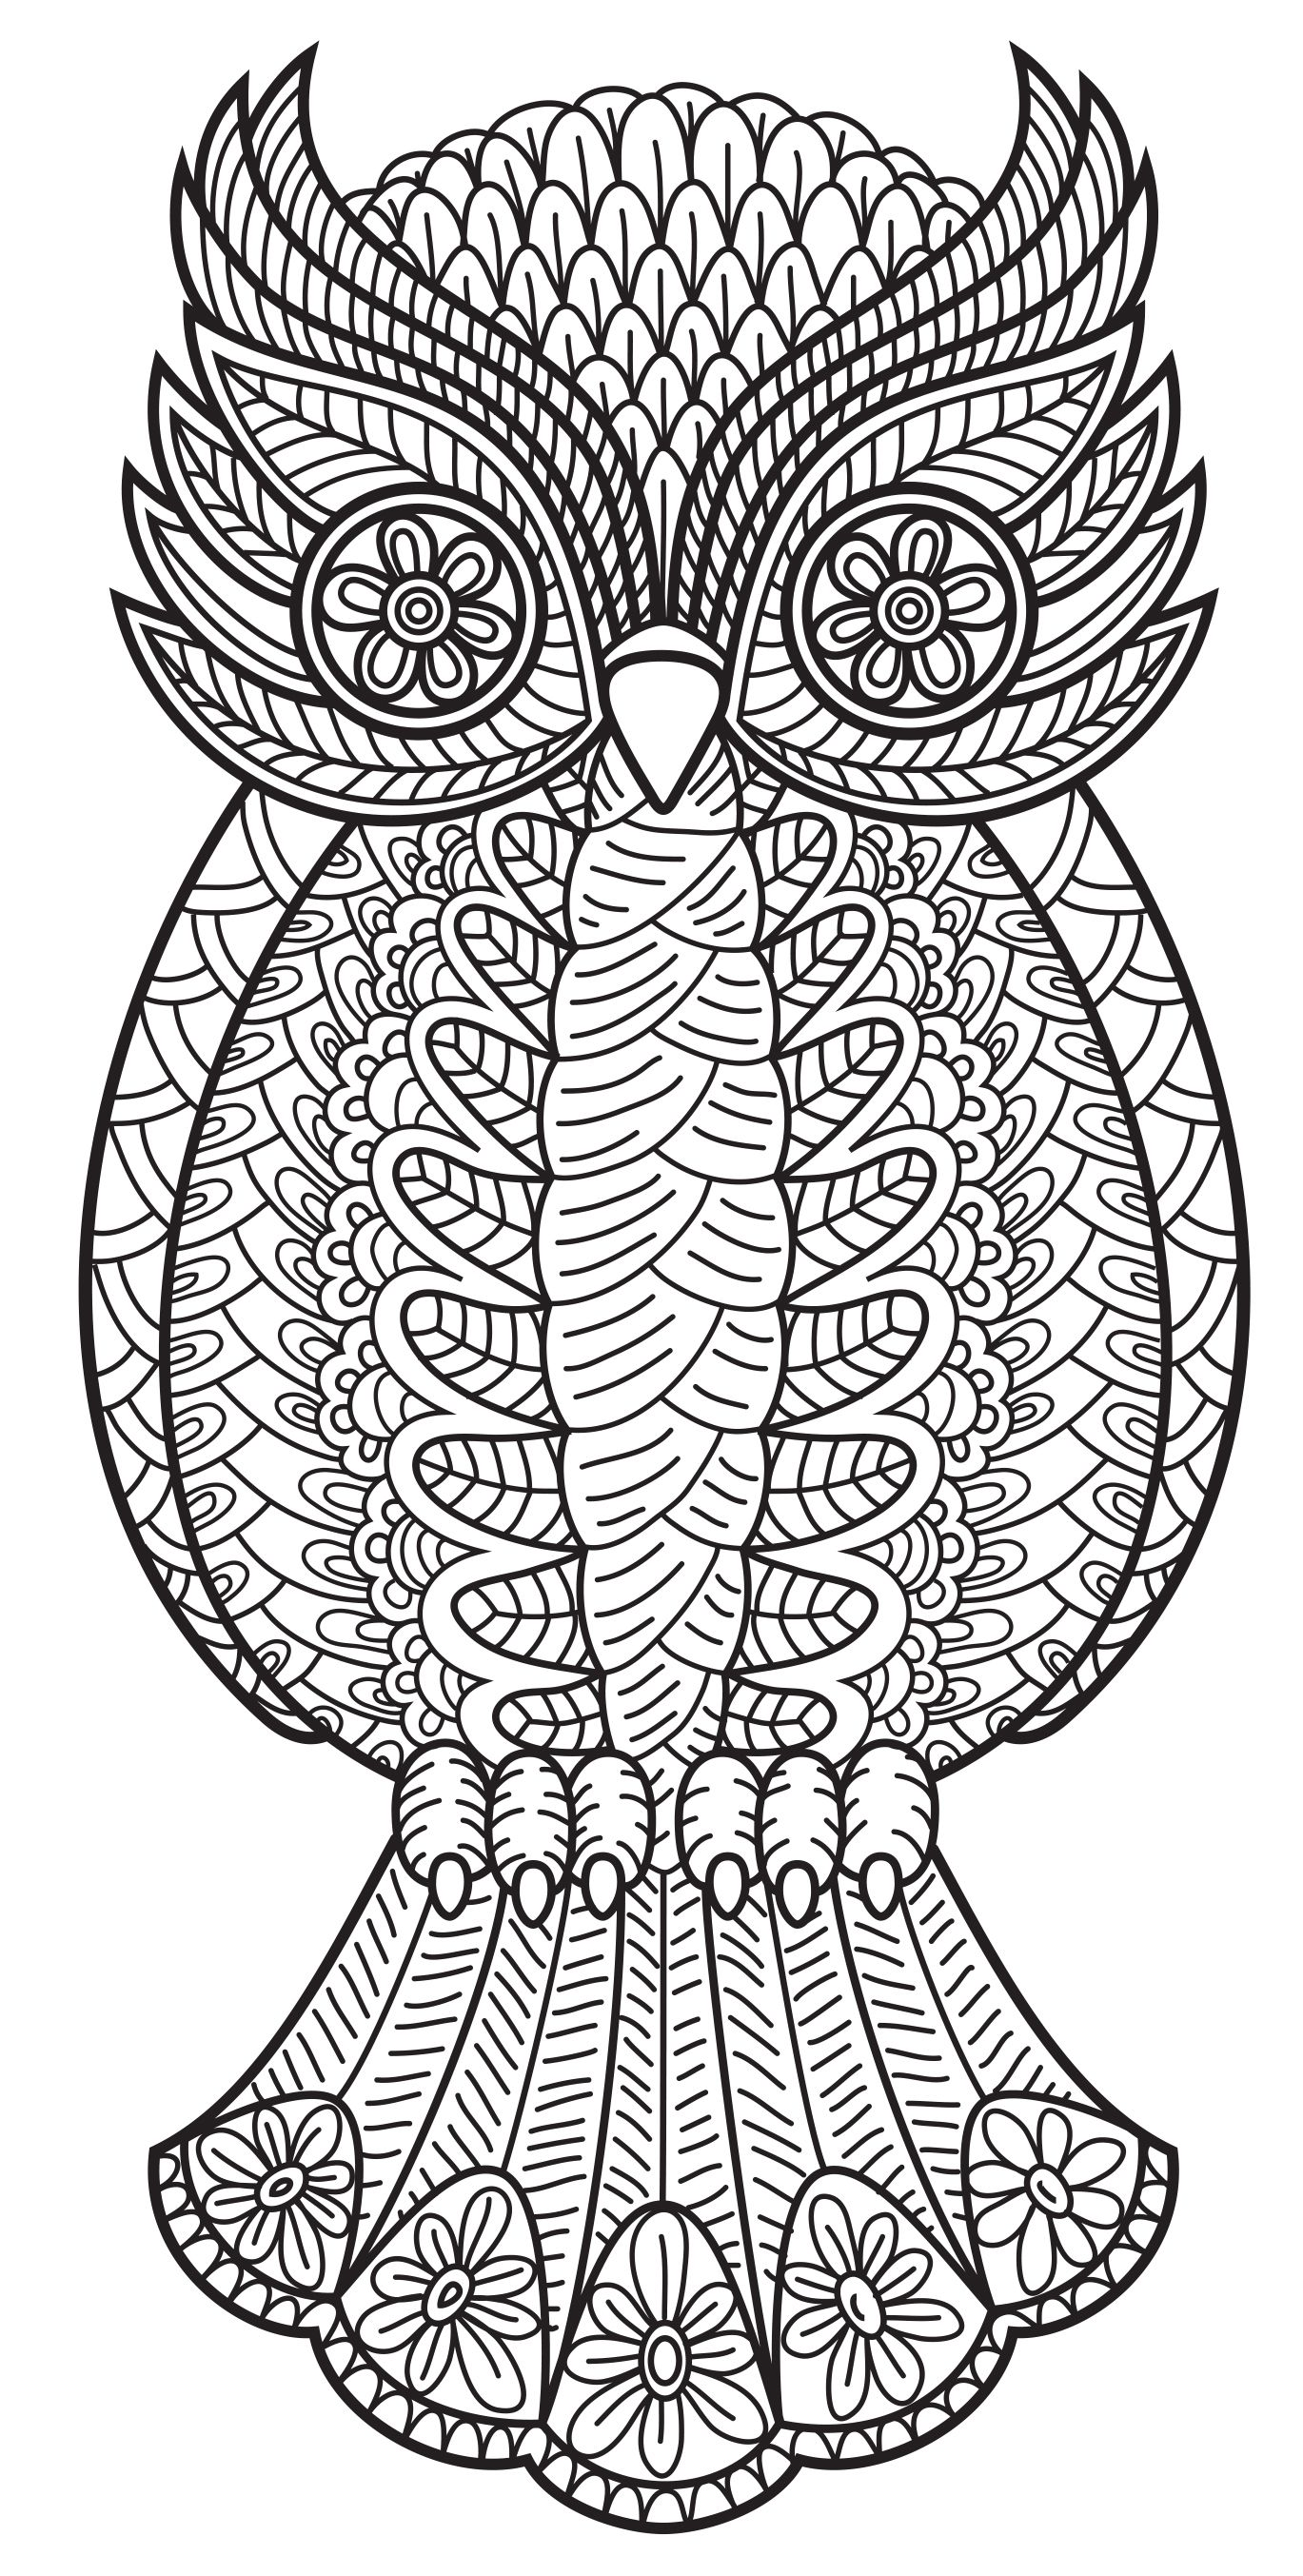 An Owl From Patterns Coloring Book Vol 3 Owl Coloring Pages